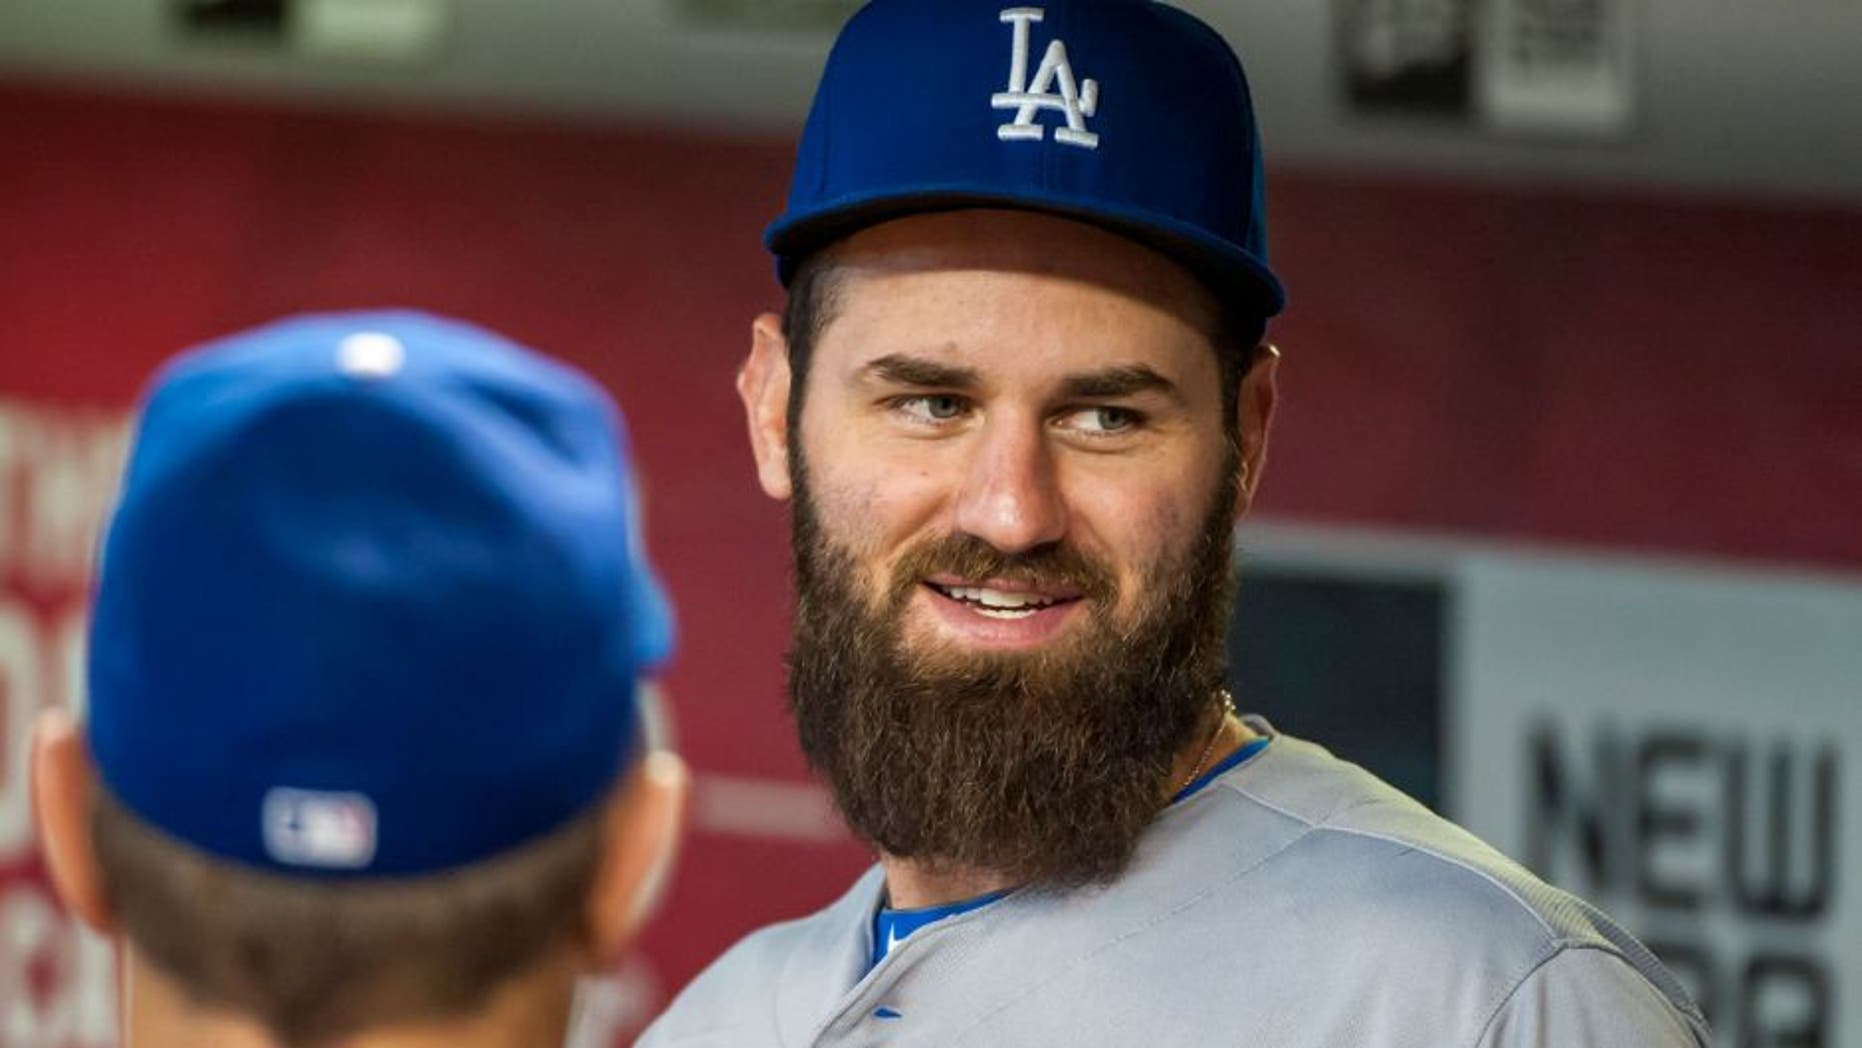 PHOENIX, AZ - SEPTEMBER 13: Scott Van Slyke #33 of the Los Angeles Dodgers talks with coach Tim Wallach #29 before a MLB game against the Arizona Diamondbacks on September 13, 2015 at Chase Field in Phoenix, Arizona. (Photo by Darin Wallentine/Getty Images)